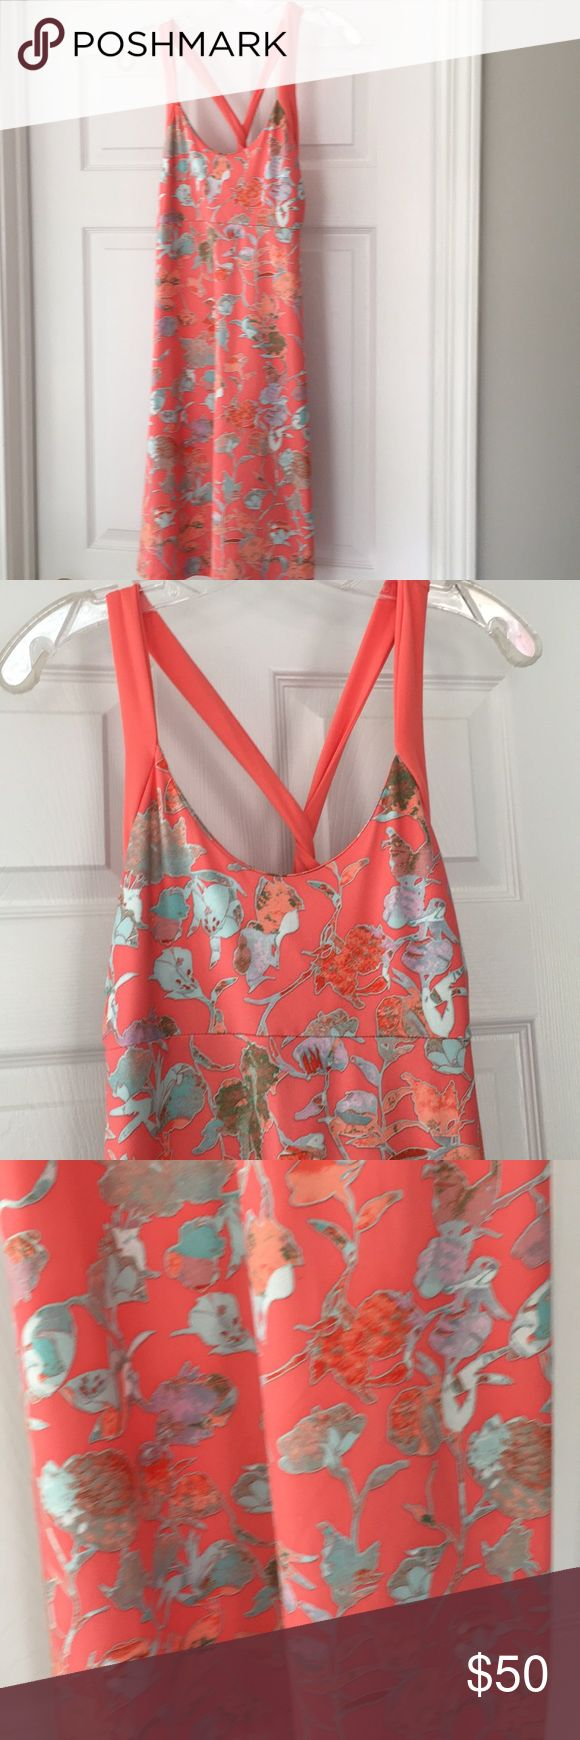 Patagonia size medium peach floral dress Beautiful and like brand new (worn once) Patagonia dress size medium with built in shelf bra Patagonia Dresses Midi